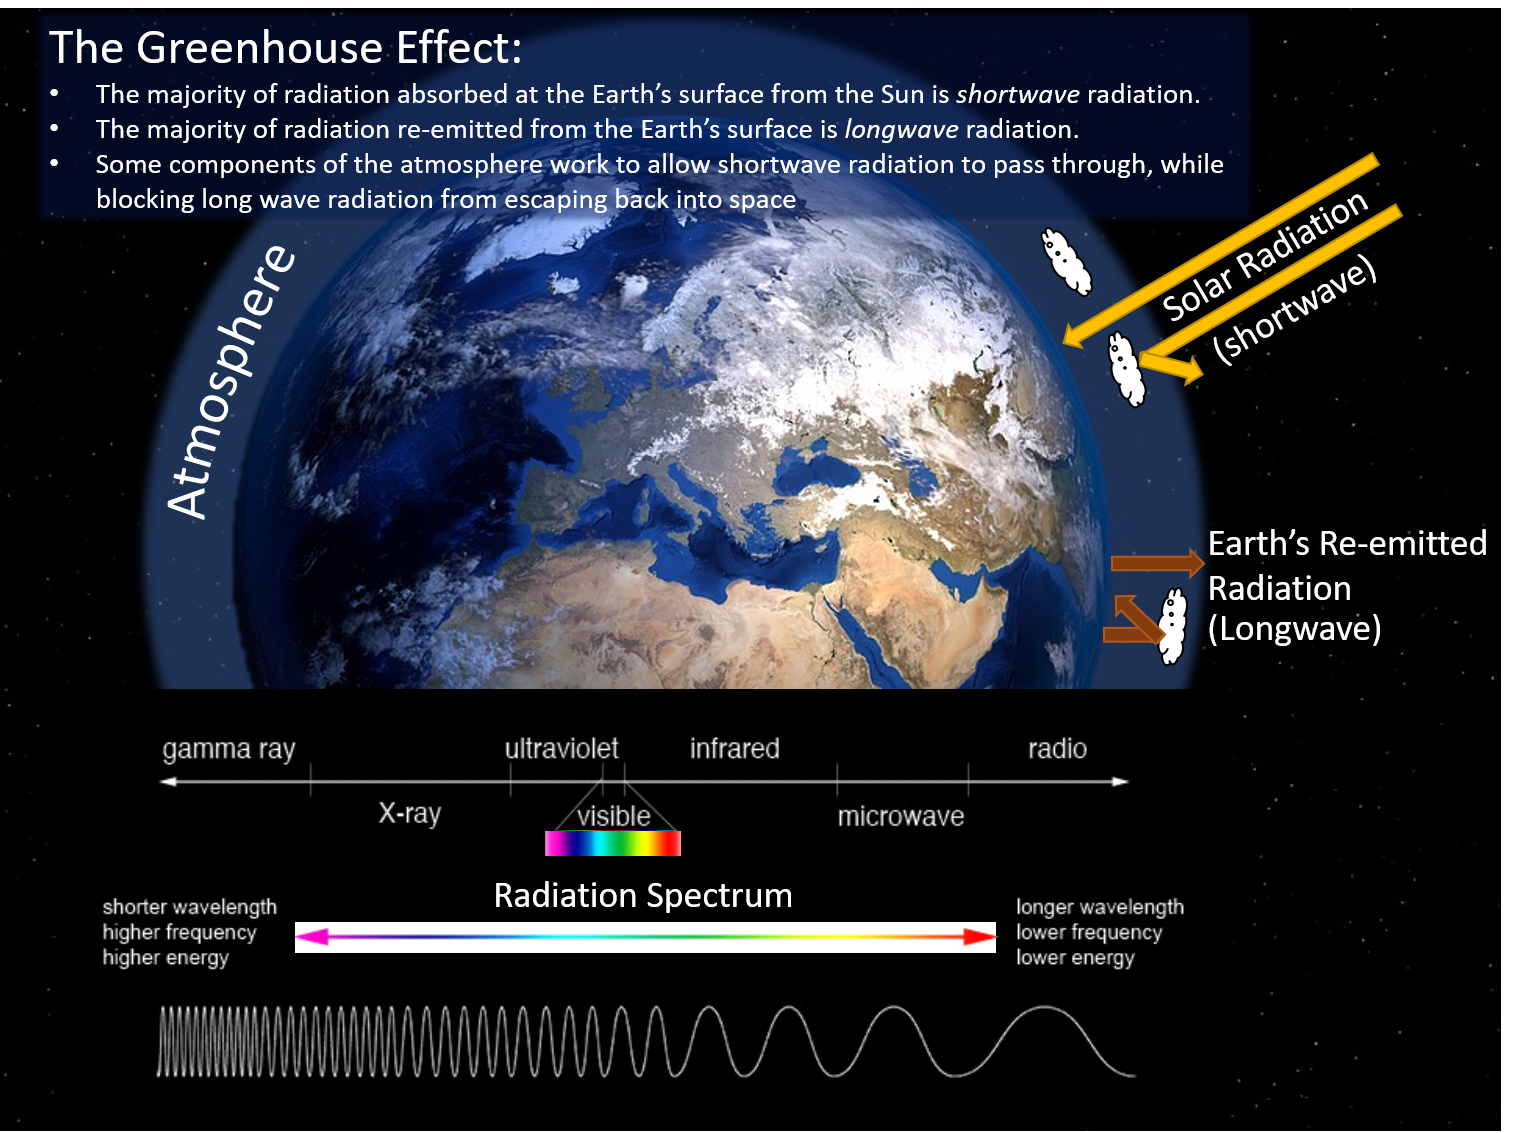 [Embedded text] The greenhouse effect: The majority of radiation absorbed at the Earth's surface from the sun is shortwave radiation. The majority of radiation re-emitted from Earth's surface is longwave radiation. Some components of the atmosphere work to allow shortwave radiation to pass through, while blocking longwave radiation from escaping back into space.